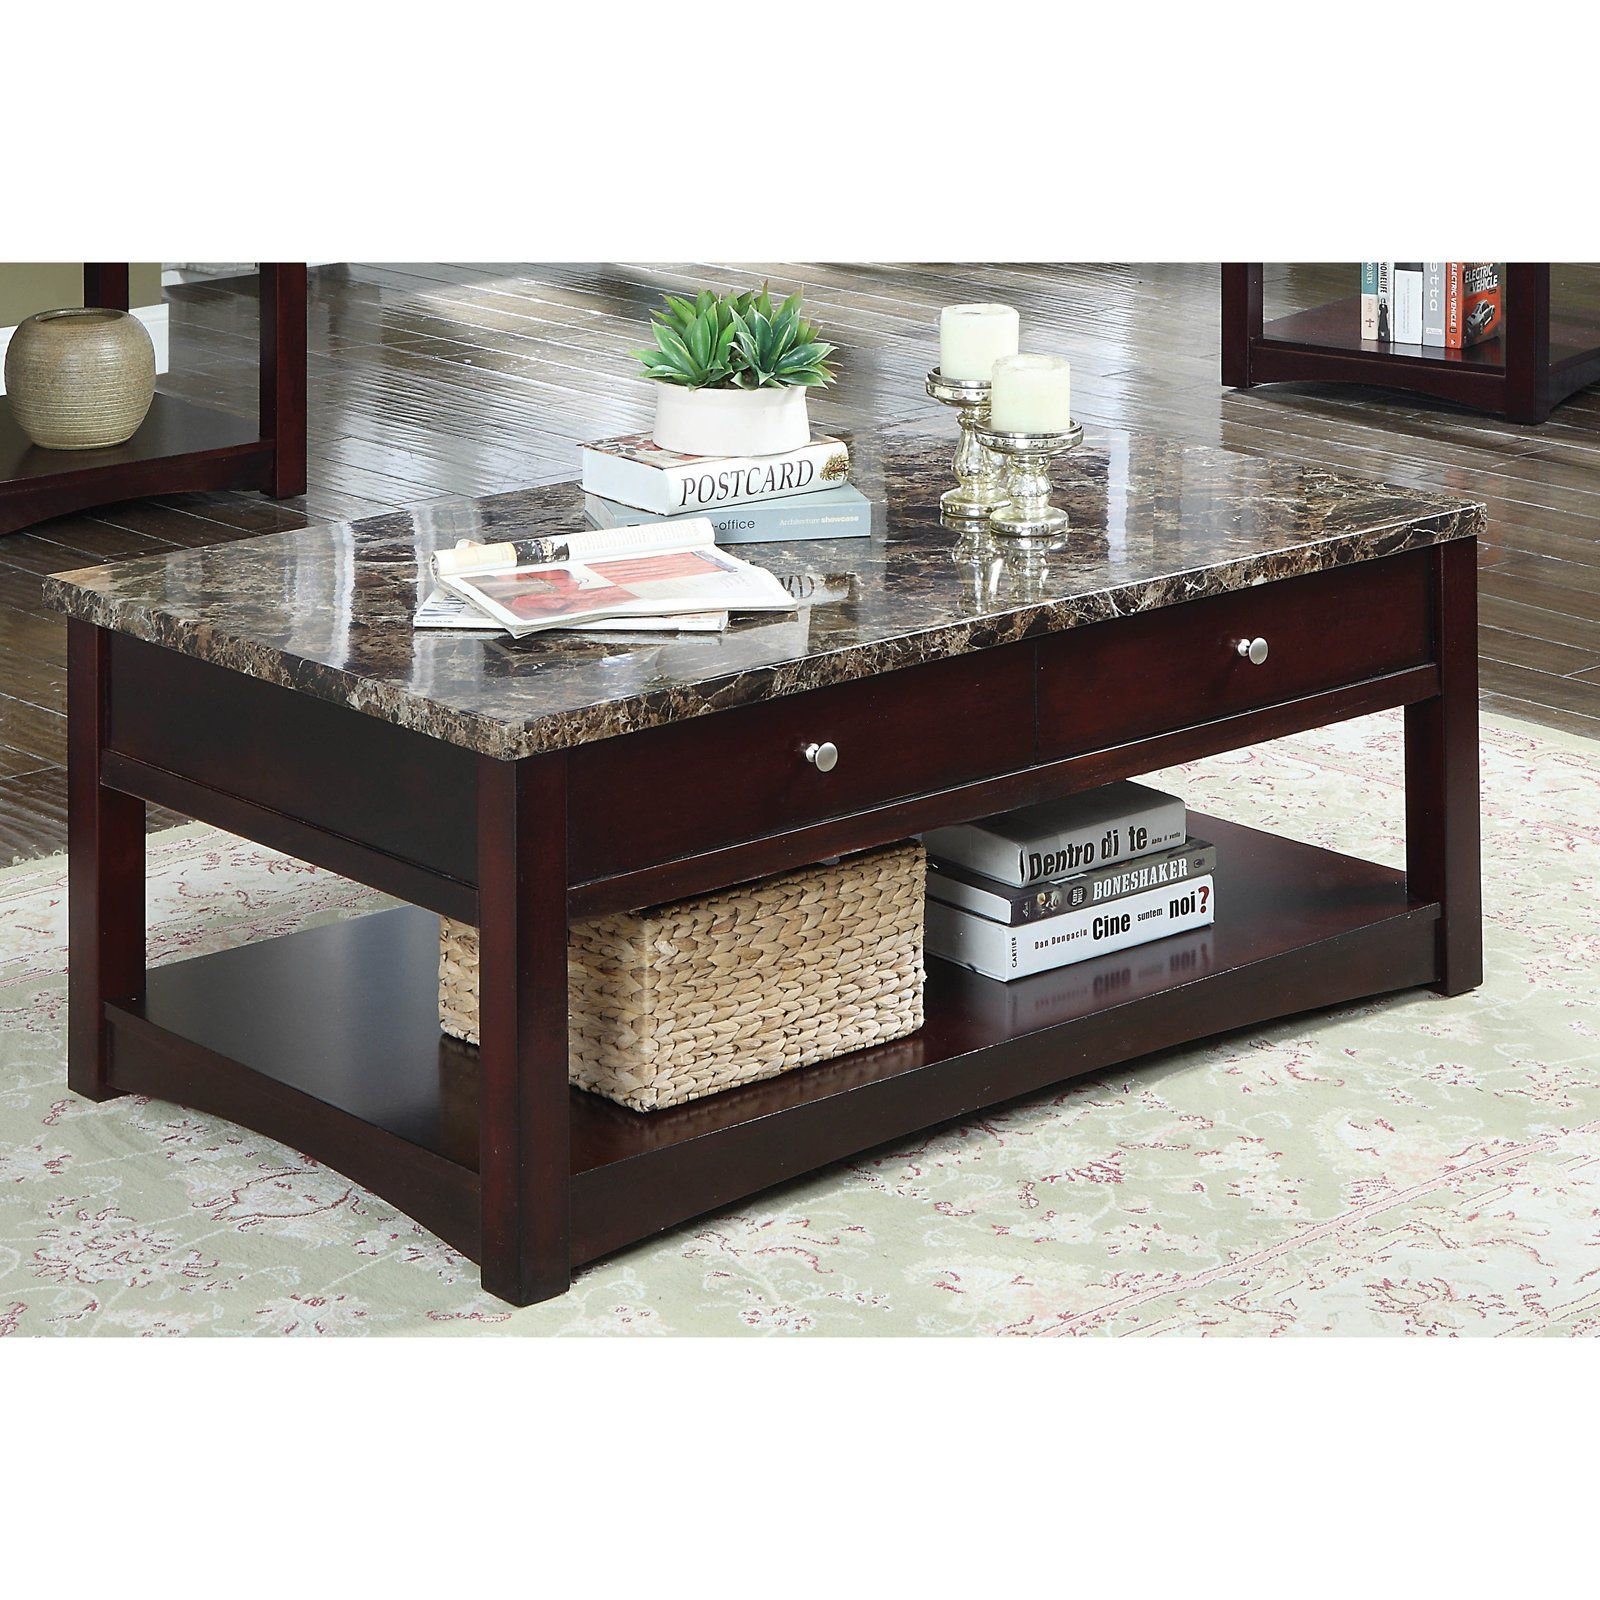 Furniture Of America Newport Contemporary Faux Marble Lift Top Coffee Table Marble Top Coffee Table Modern Coffee Table Decor Coffee Table [ 1600 x 1600 Pixel ]